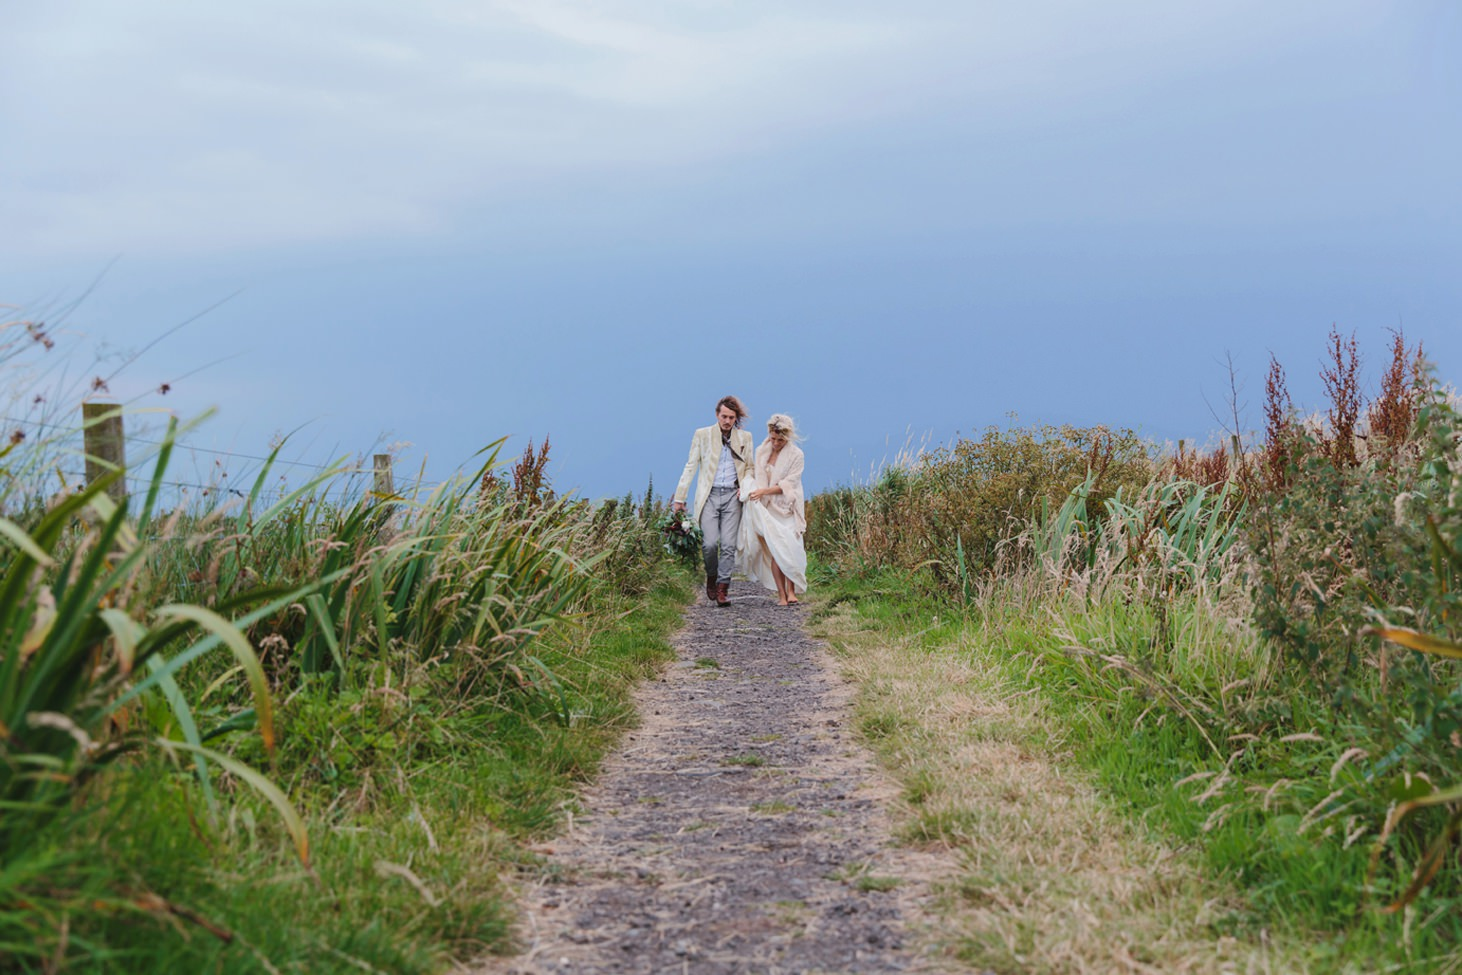 sle of bute wedding photography bride and groom on path